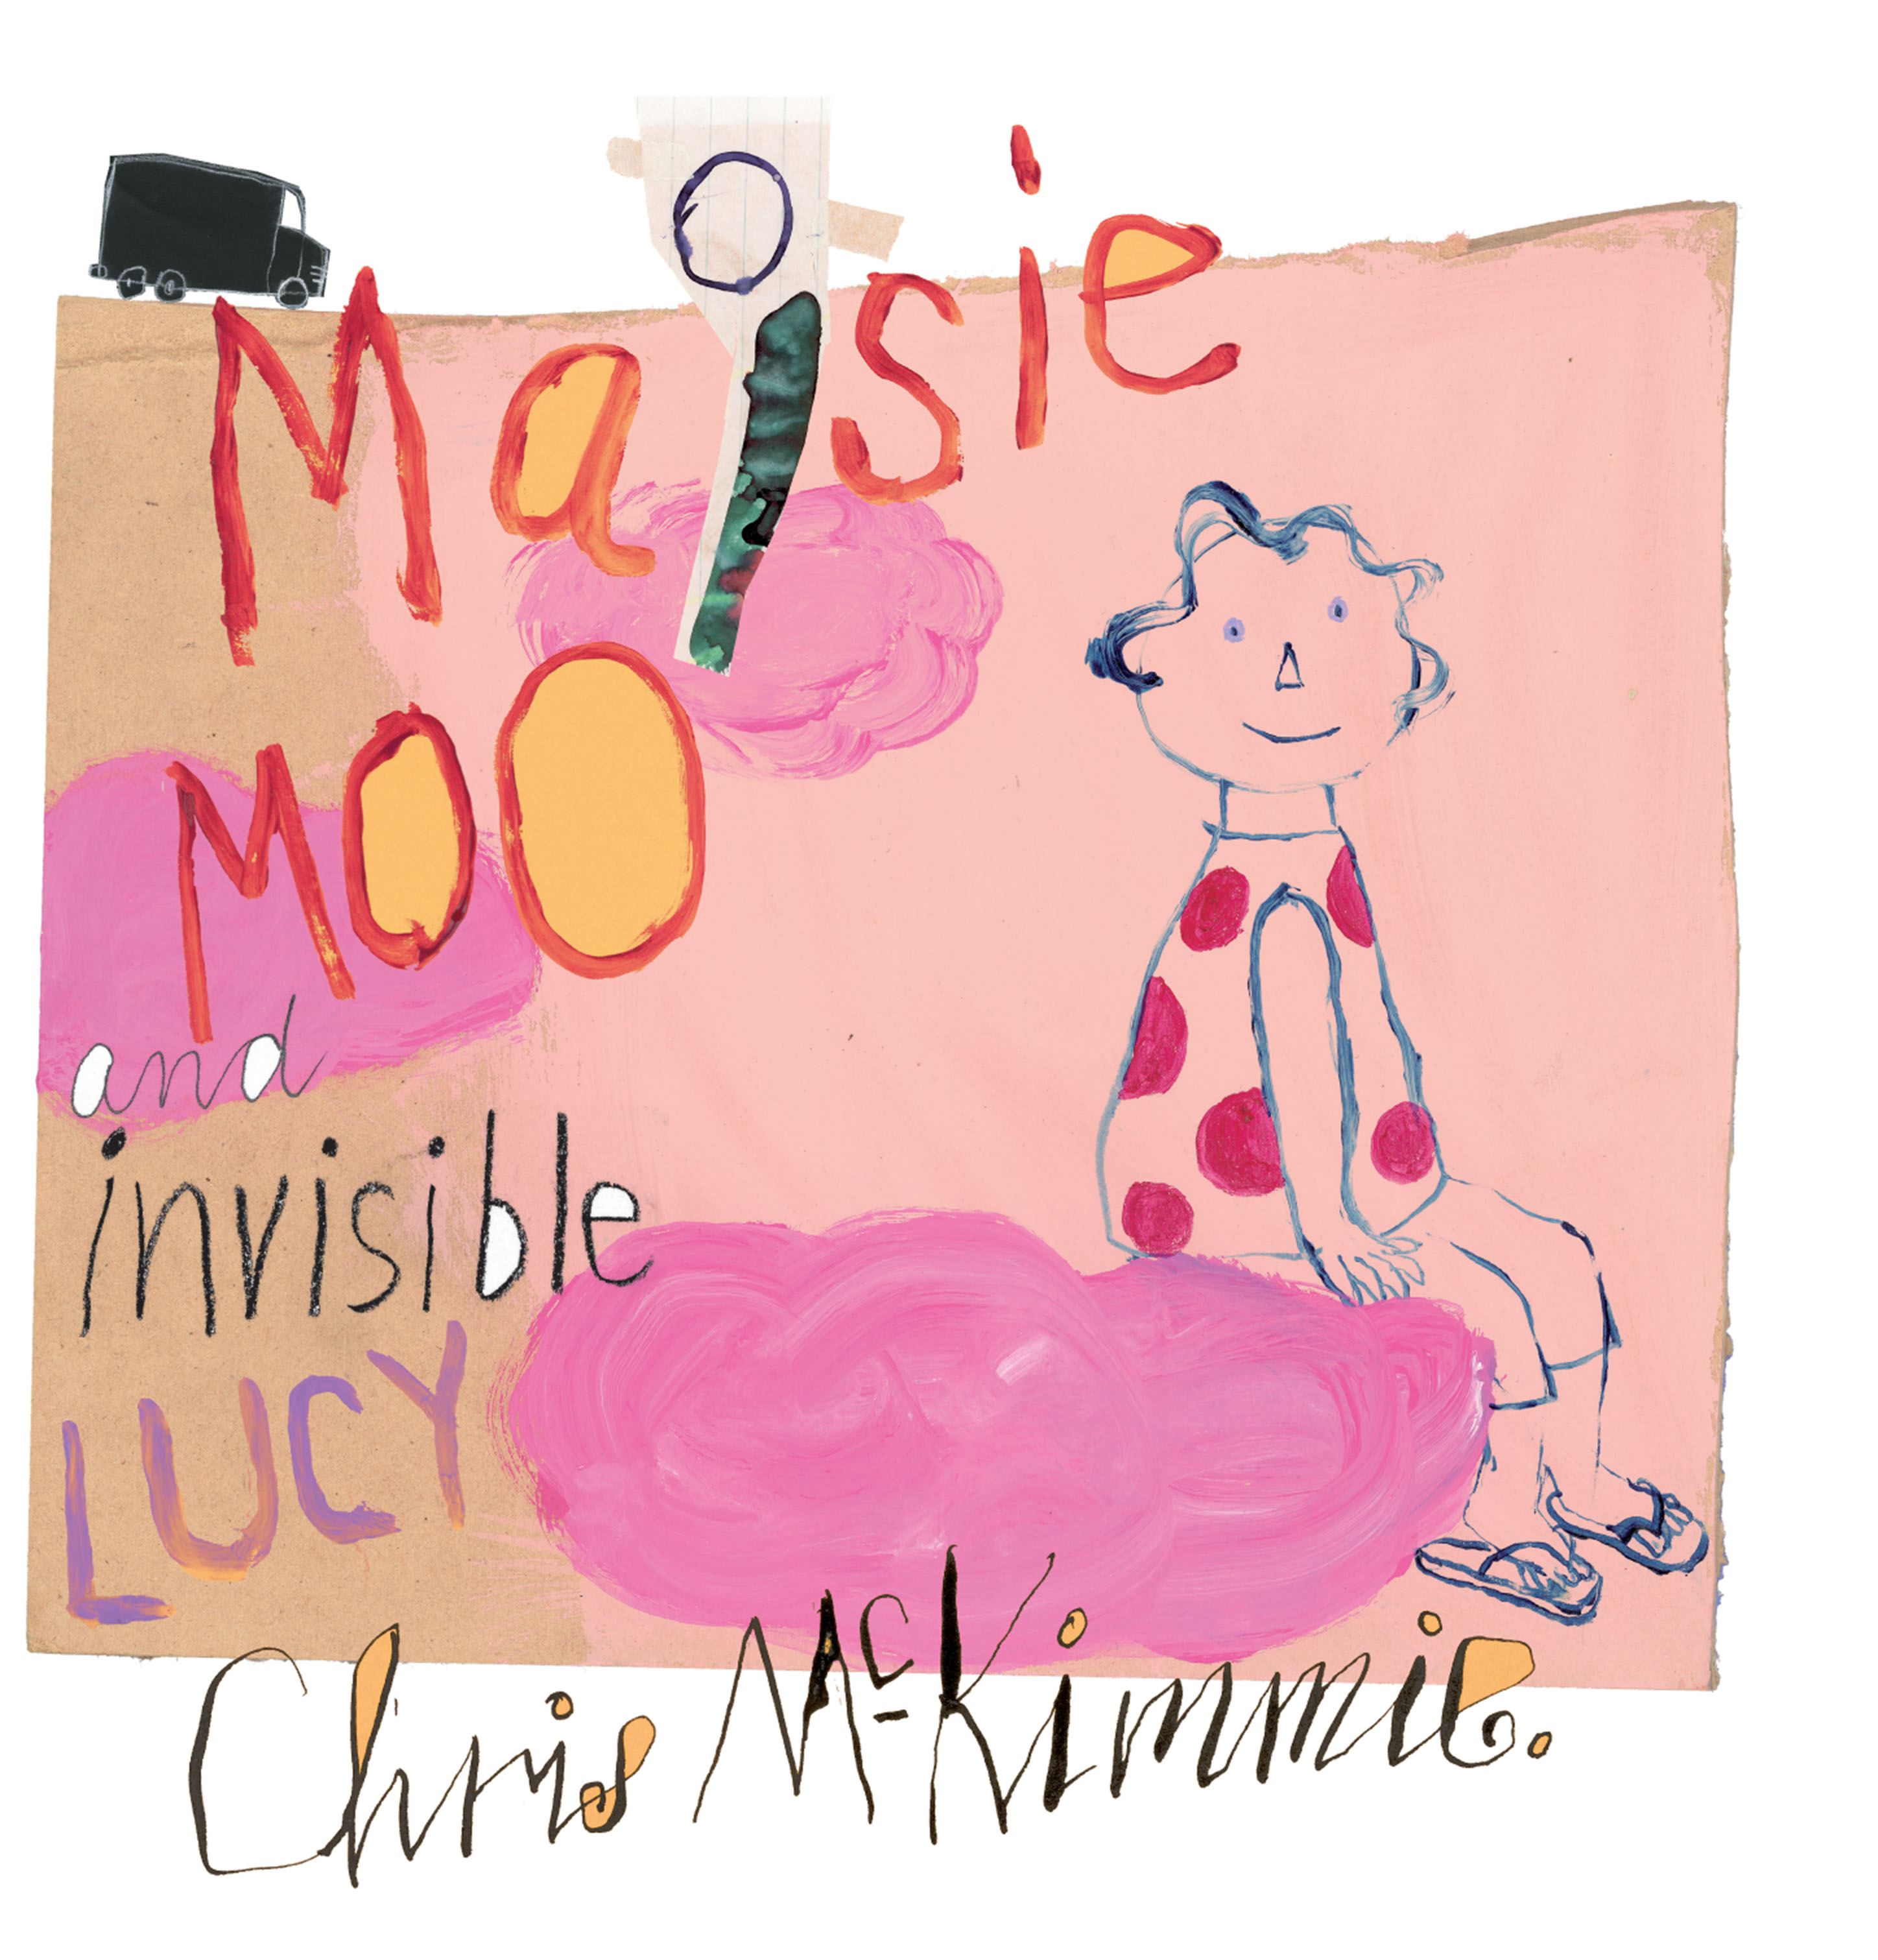 Maisie Moo And Invisible Lucy